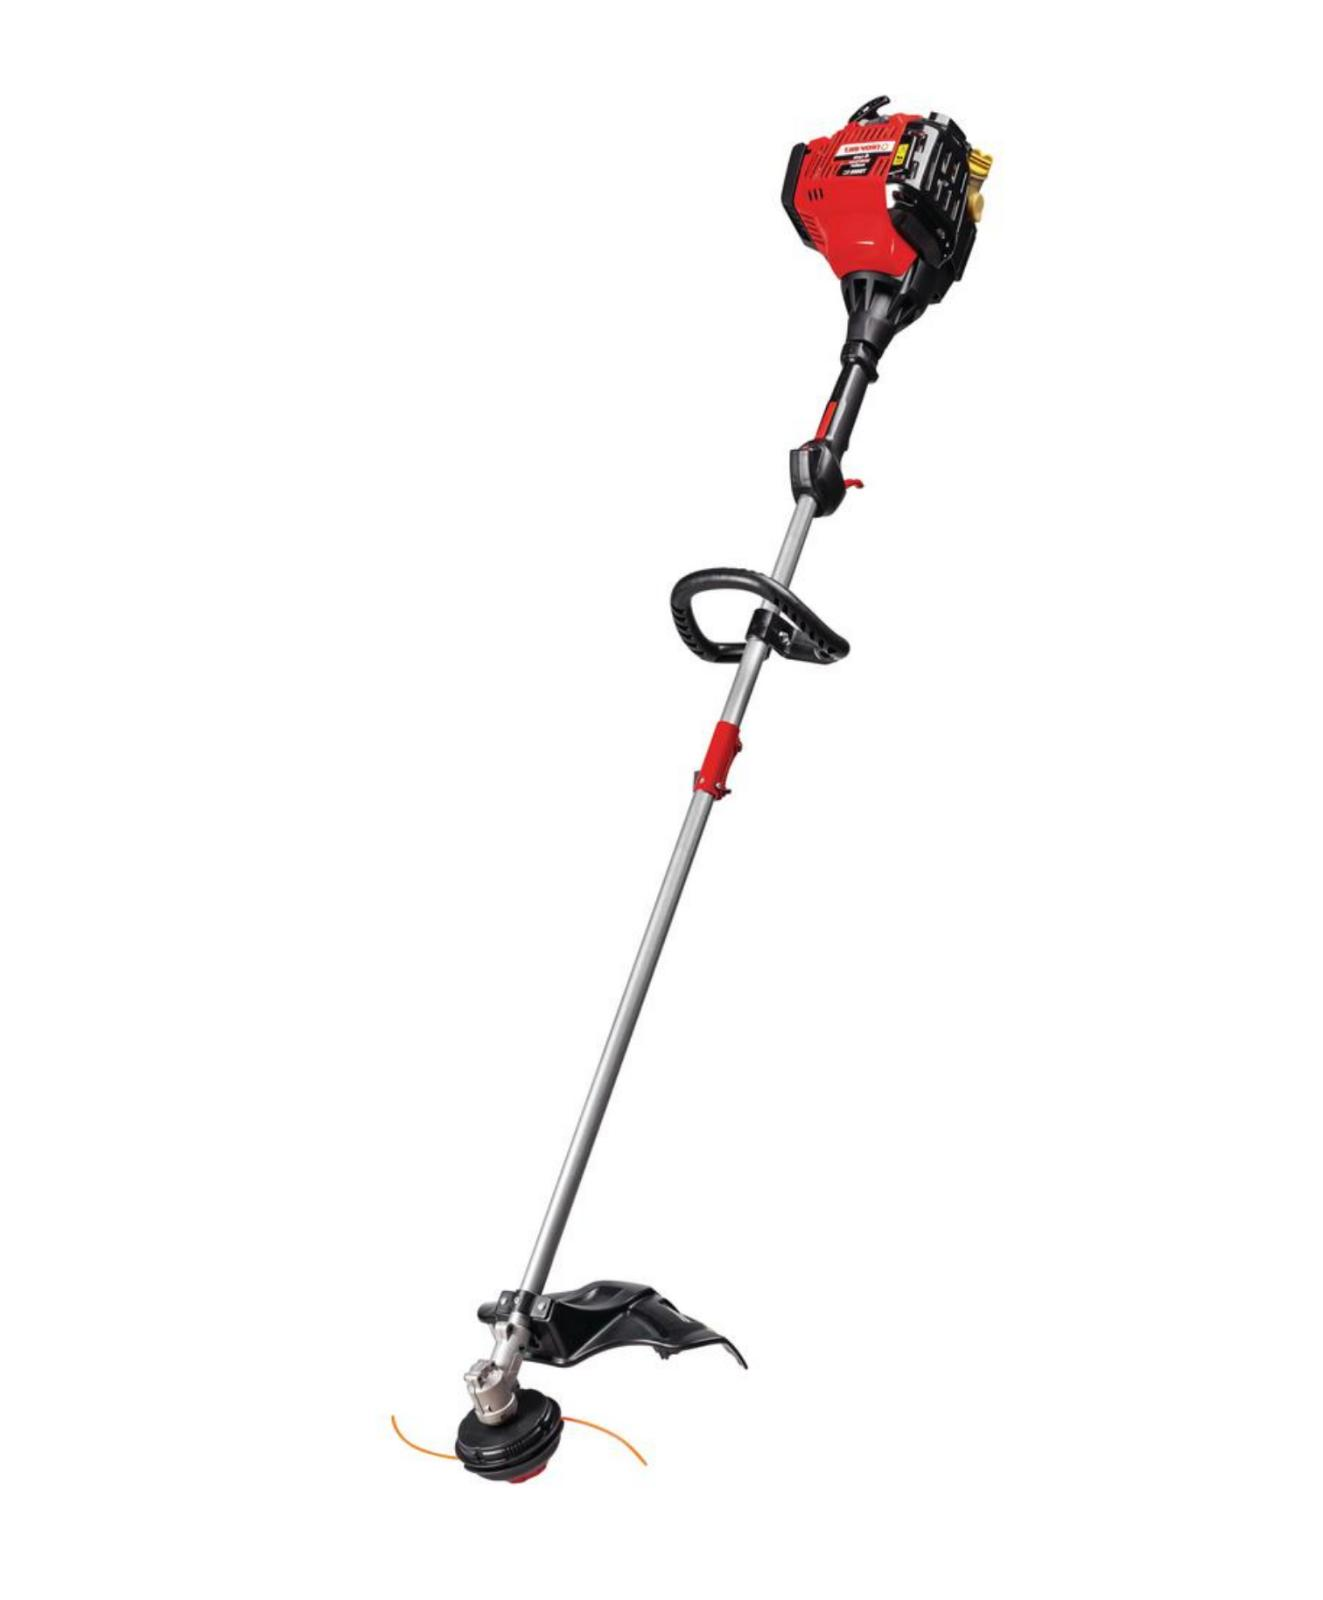 Straight Shaft Trimmer Gas Weed Eater Professional 30